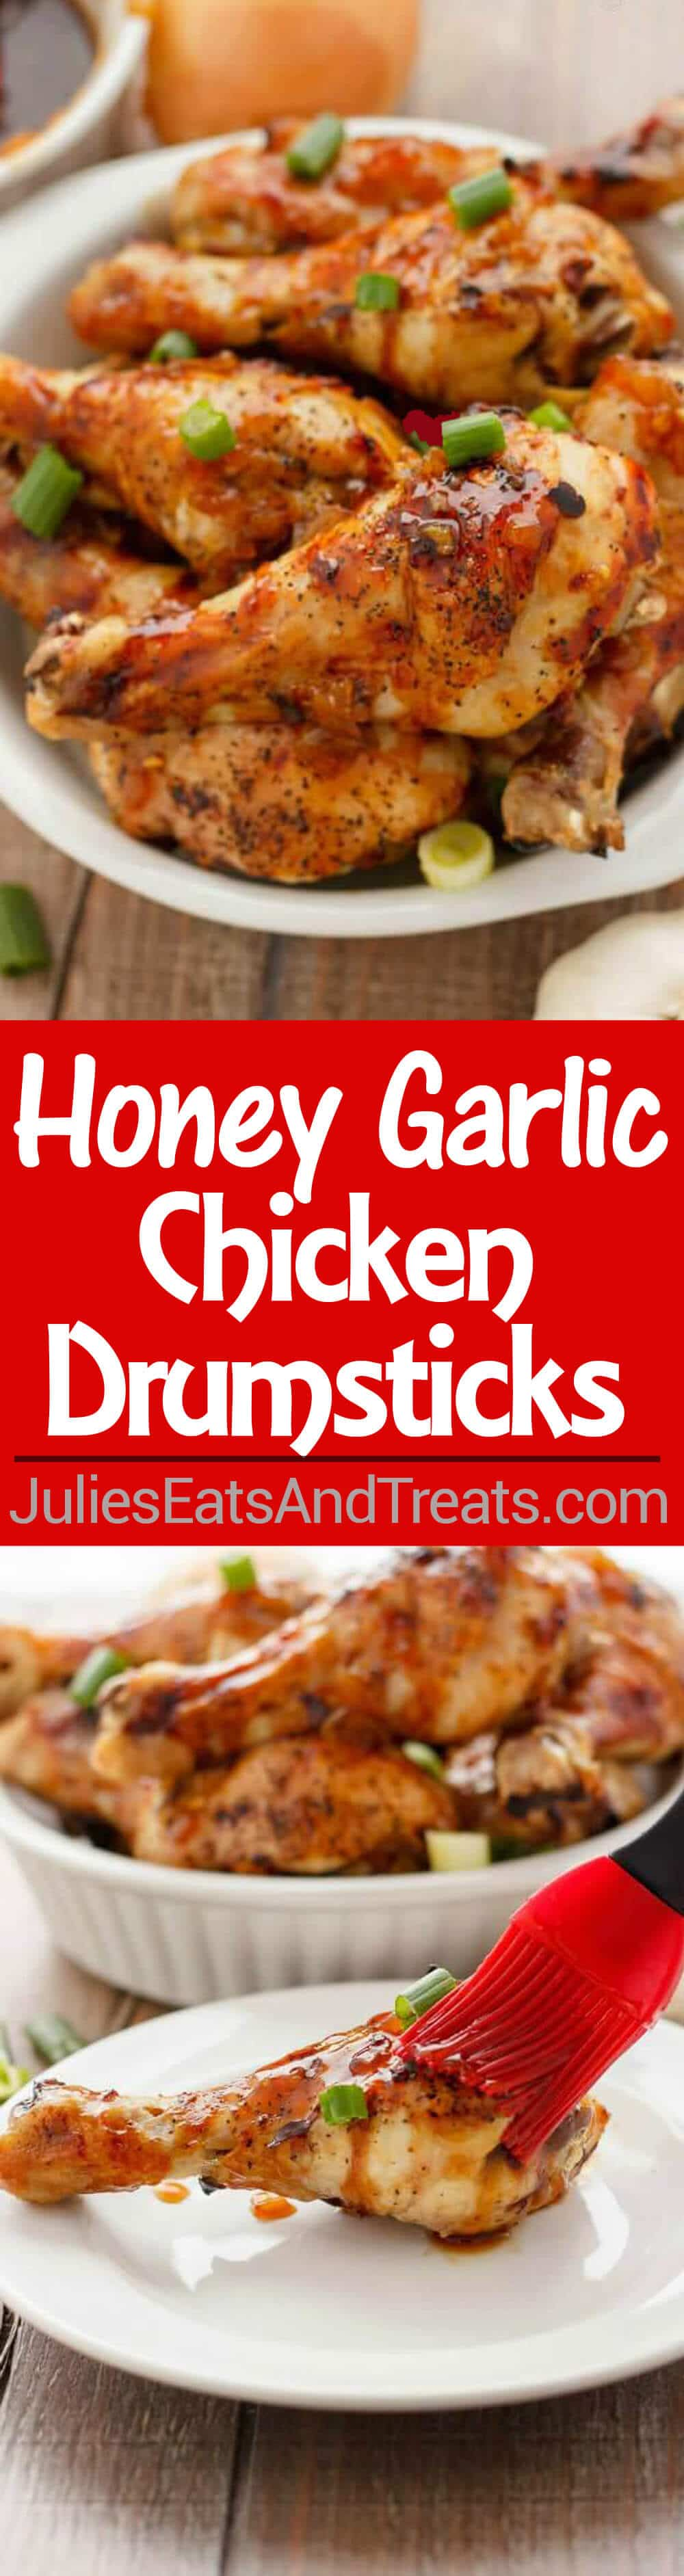 Honey Garlic Chicken Drumsticks Recipe - One of the Best Chicken Drumstick Recipes! This Drumstick Recipe is Full of Flavor Perfect for an Easy Weeknight Meal!